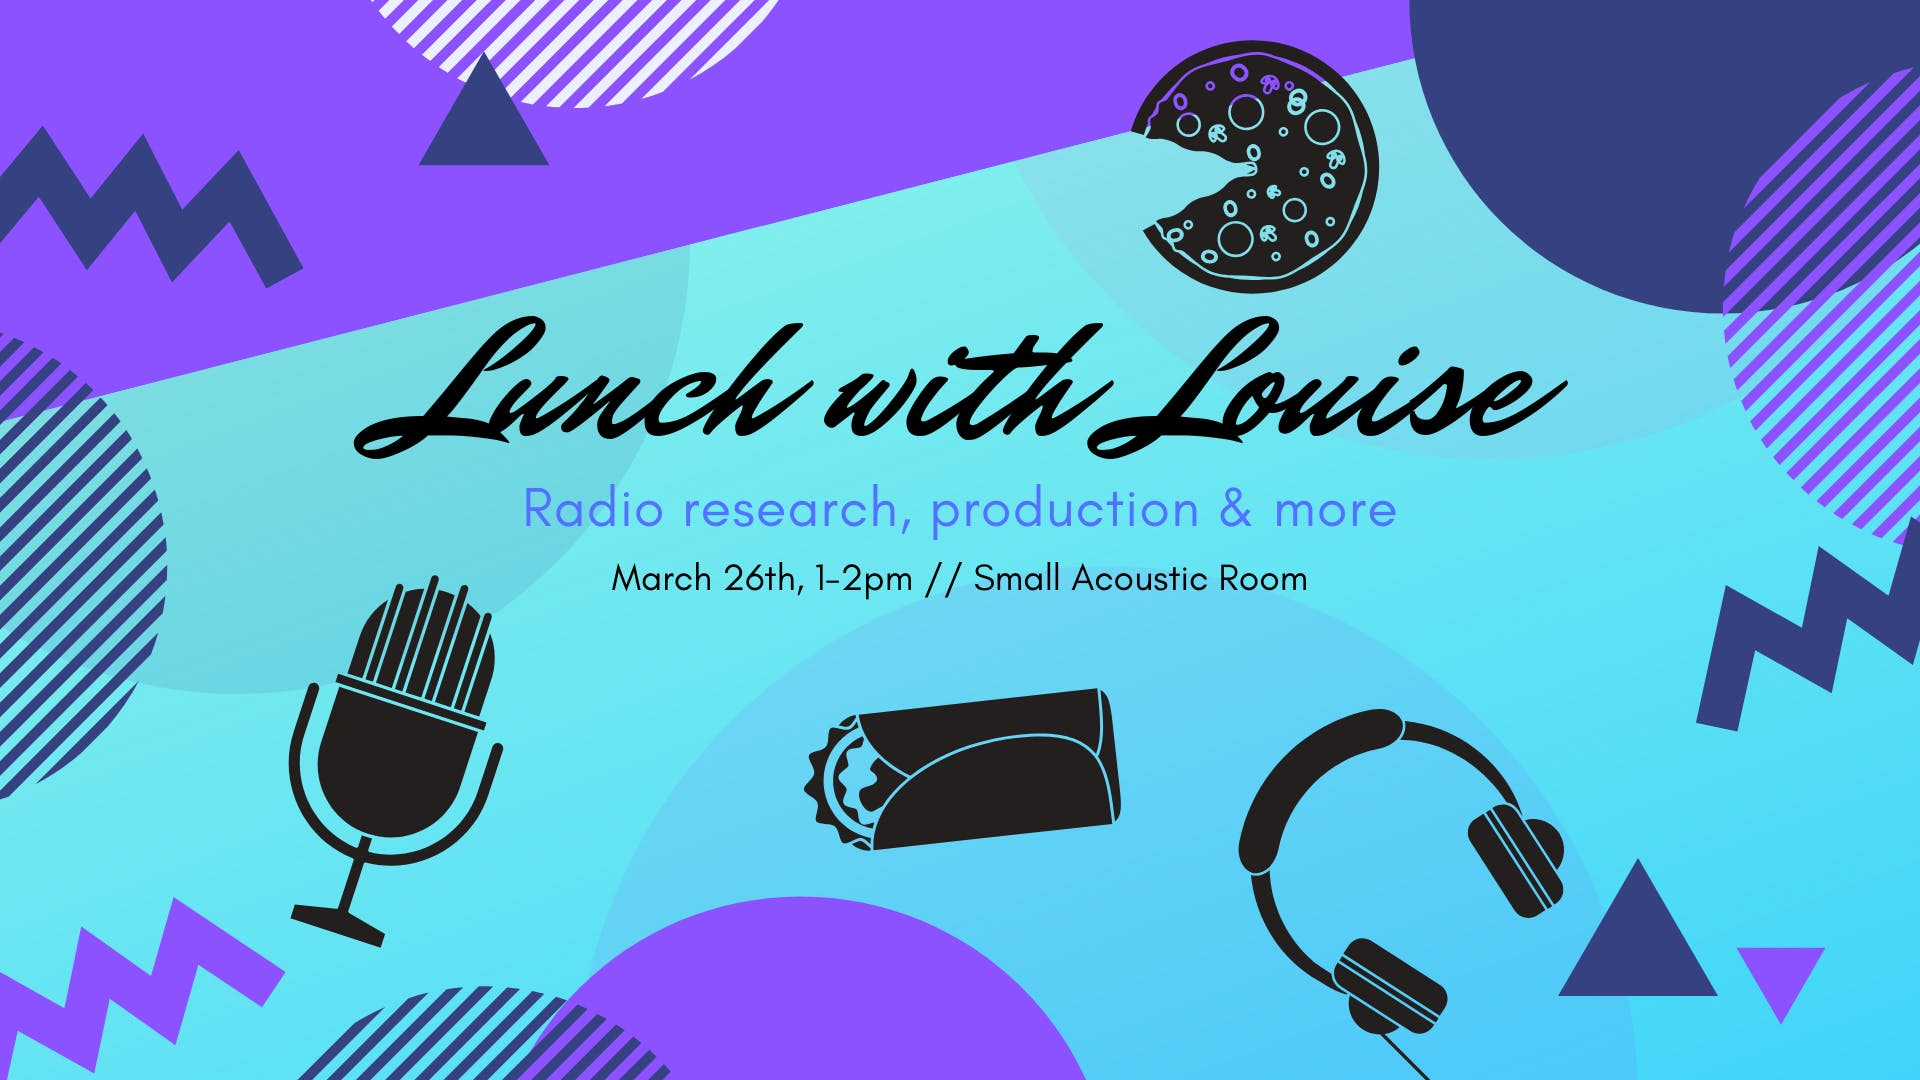 Flirt FM Training Events: Lunch with Louise